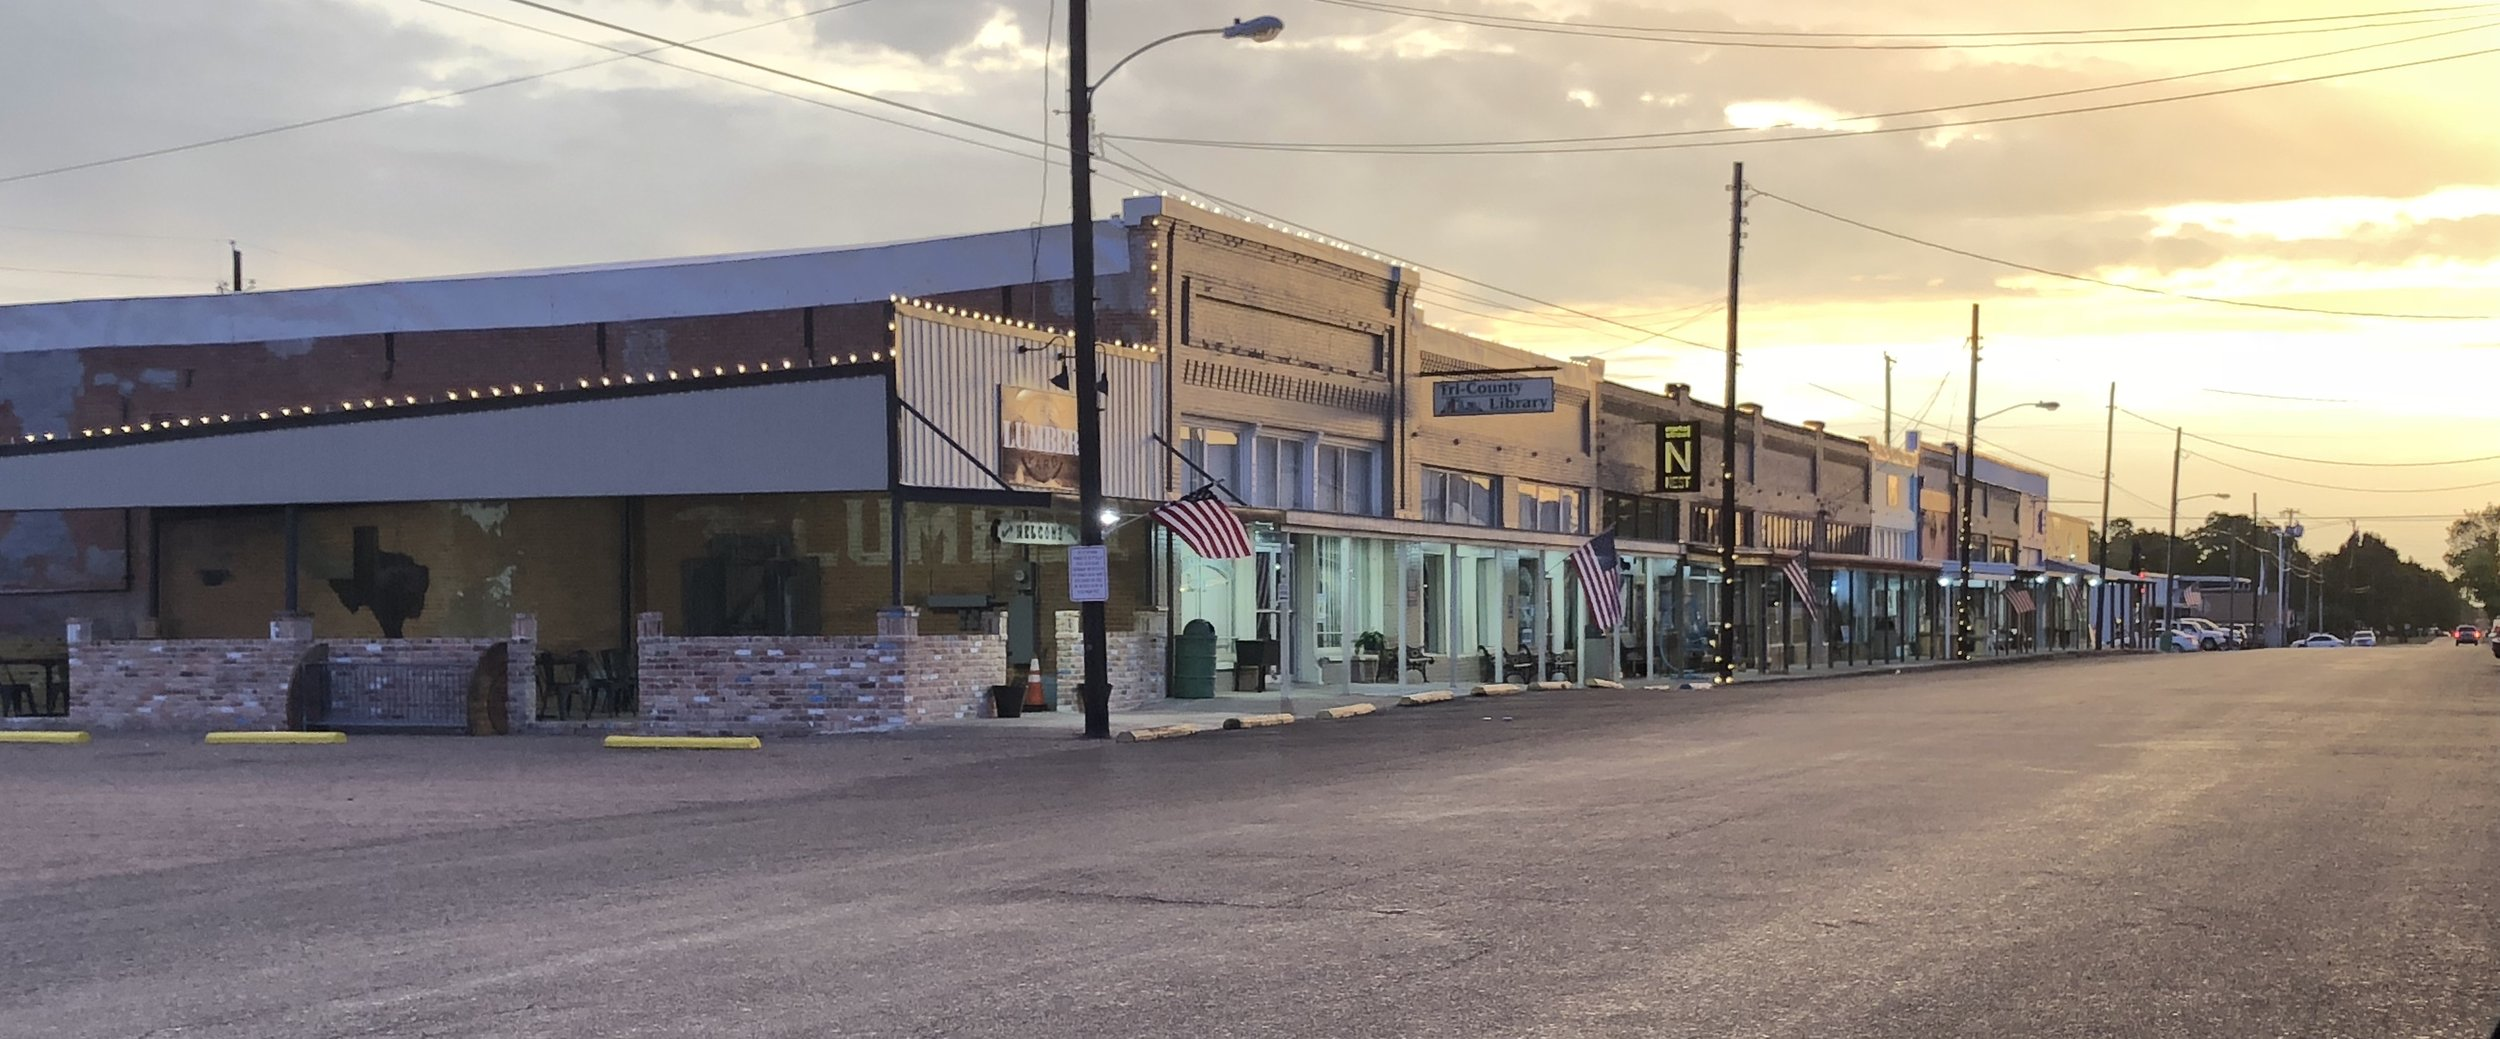 Welcome to Mabank, Texas! - We are excited that you have chosen Mabank, Texas to reside with your family or have your business. We strive to make our community a safe, relaxing, and friendly environment that you can call home. Whether you are a visitor or a resident, we open our arms to you.